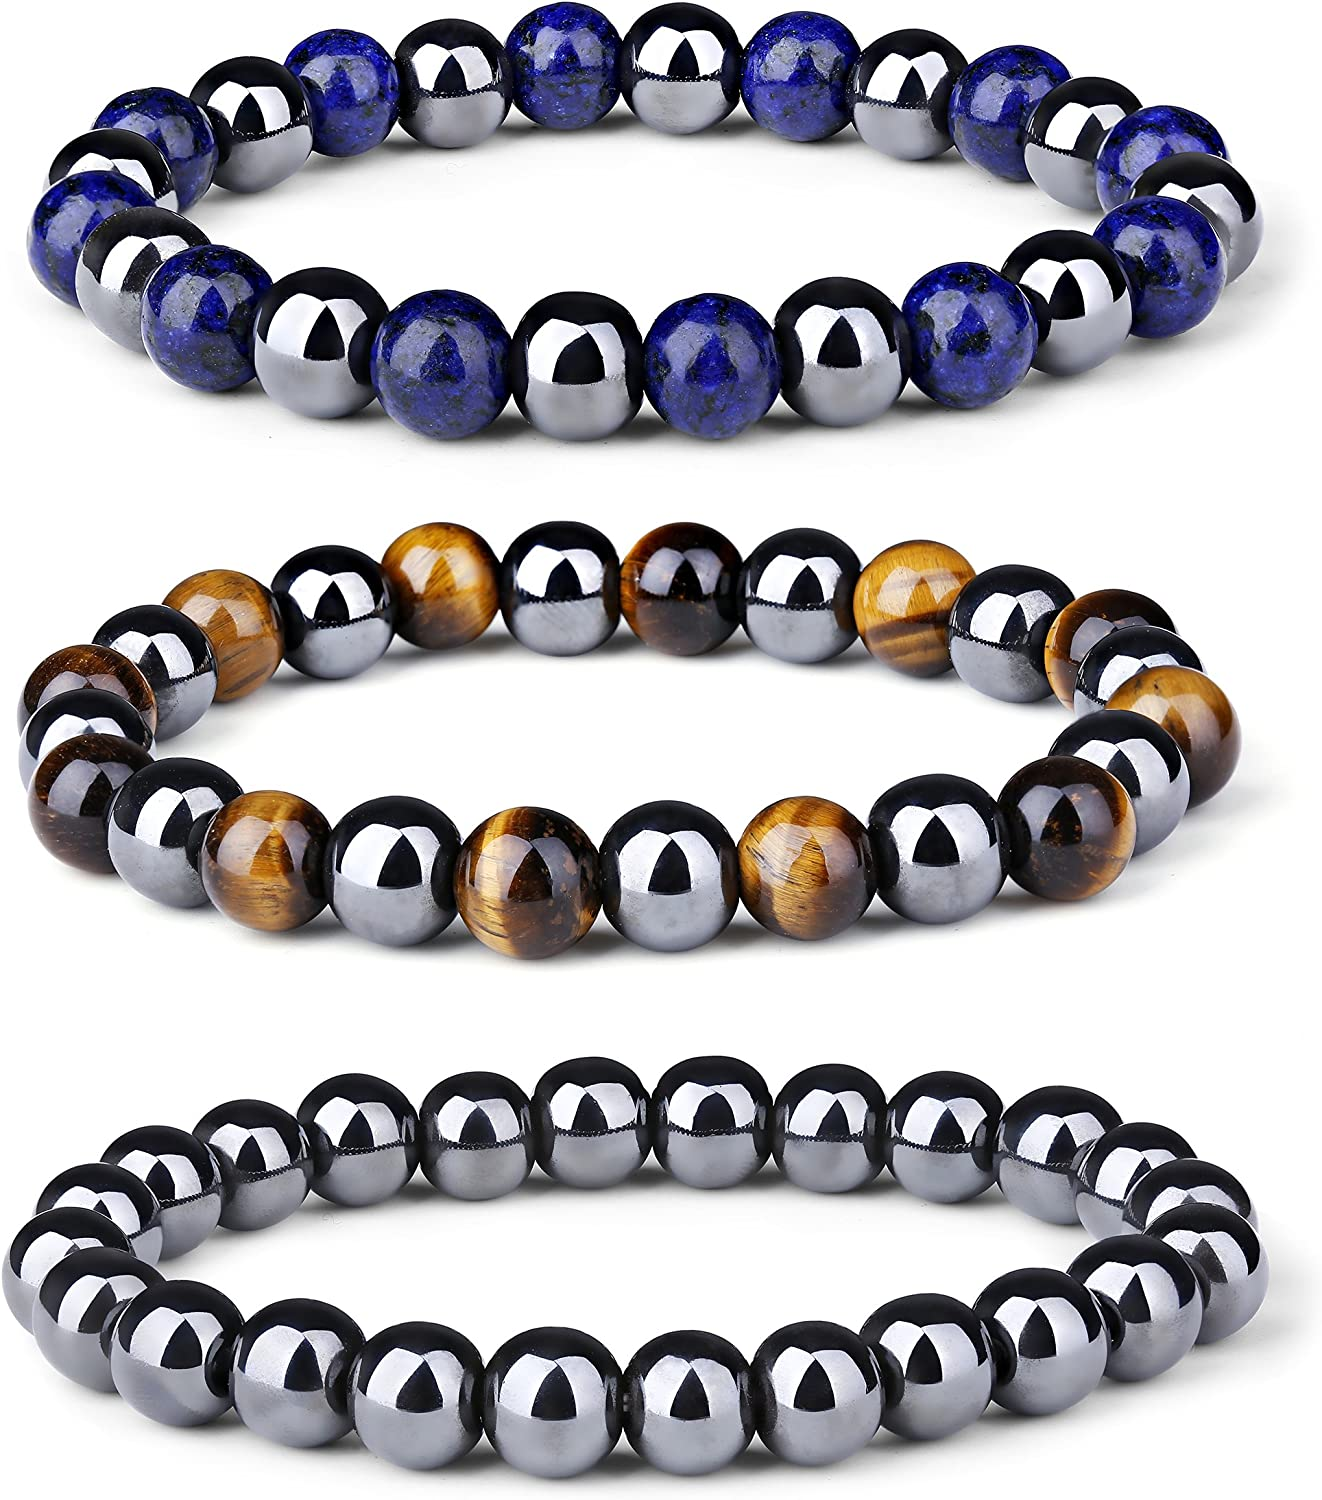 LOYALLOOK 3Pcs Magnetic Hematite Therapy Beads Bracelet Men Women Healing Energy Natural Stone Adjustable Bracelet Tiger Eye Stone